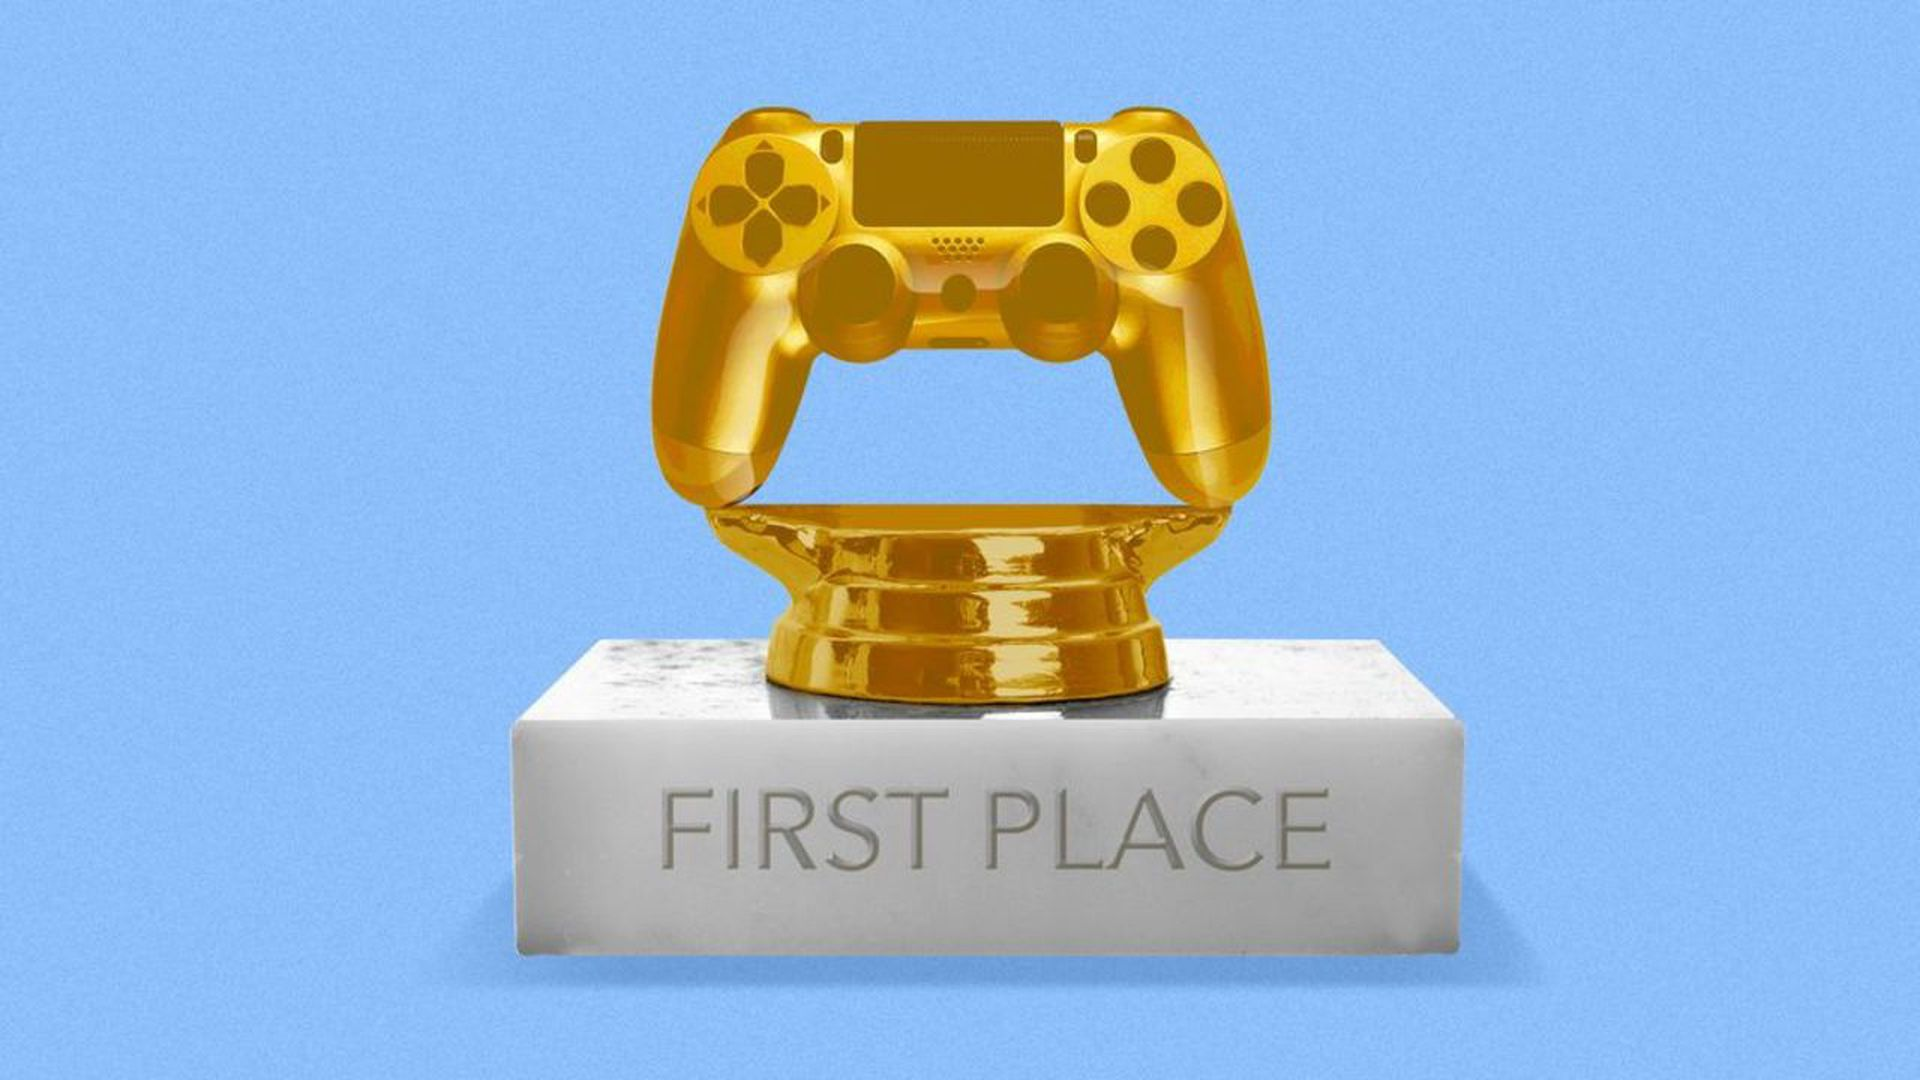 illustration of a golden playstation controller trophy